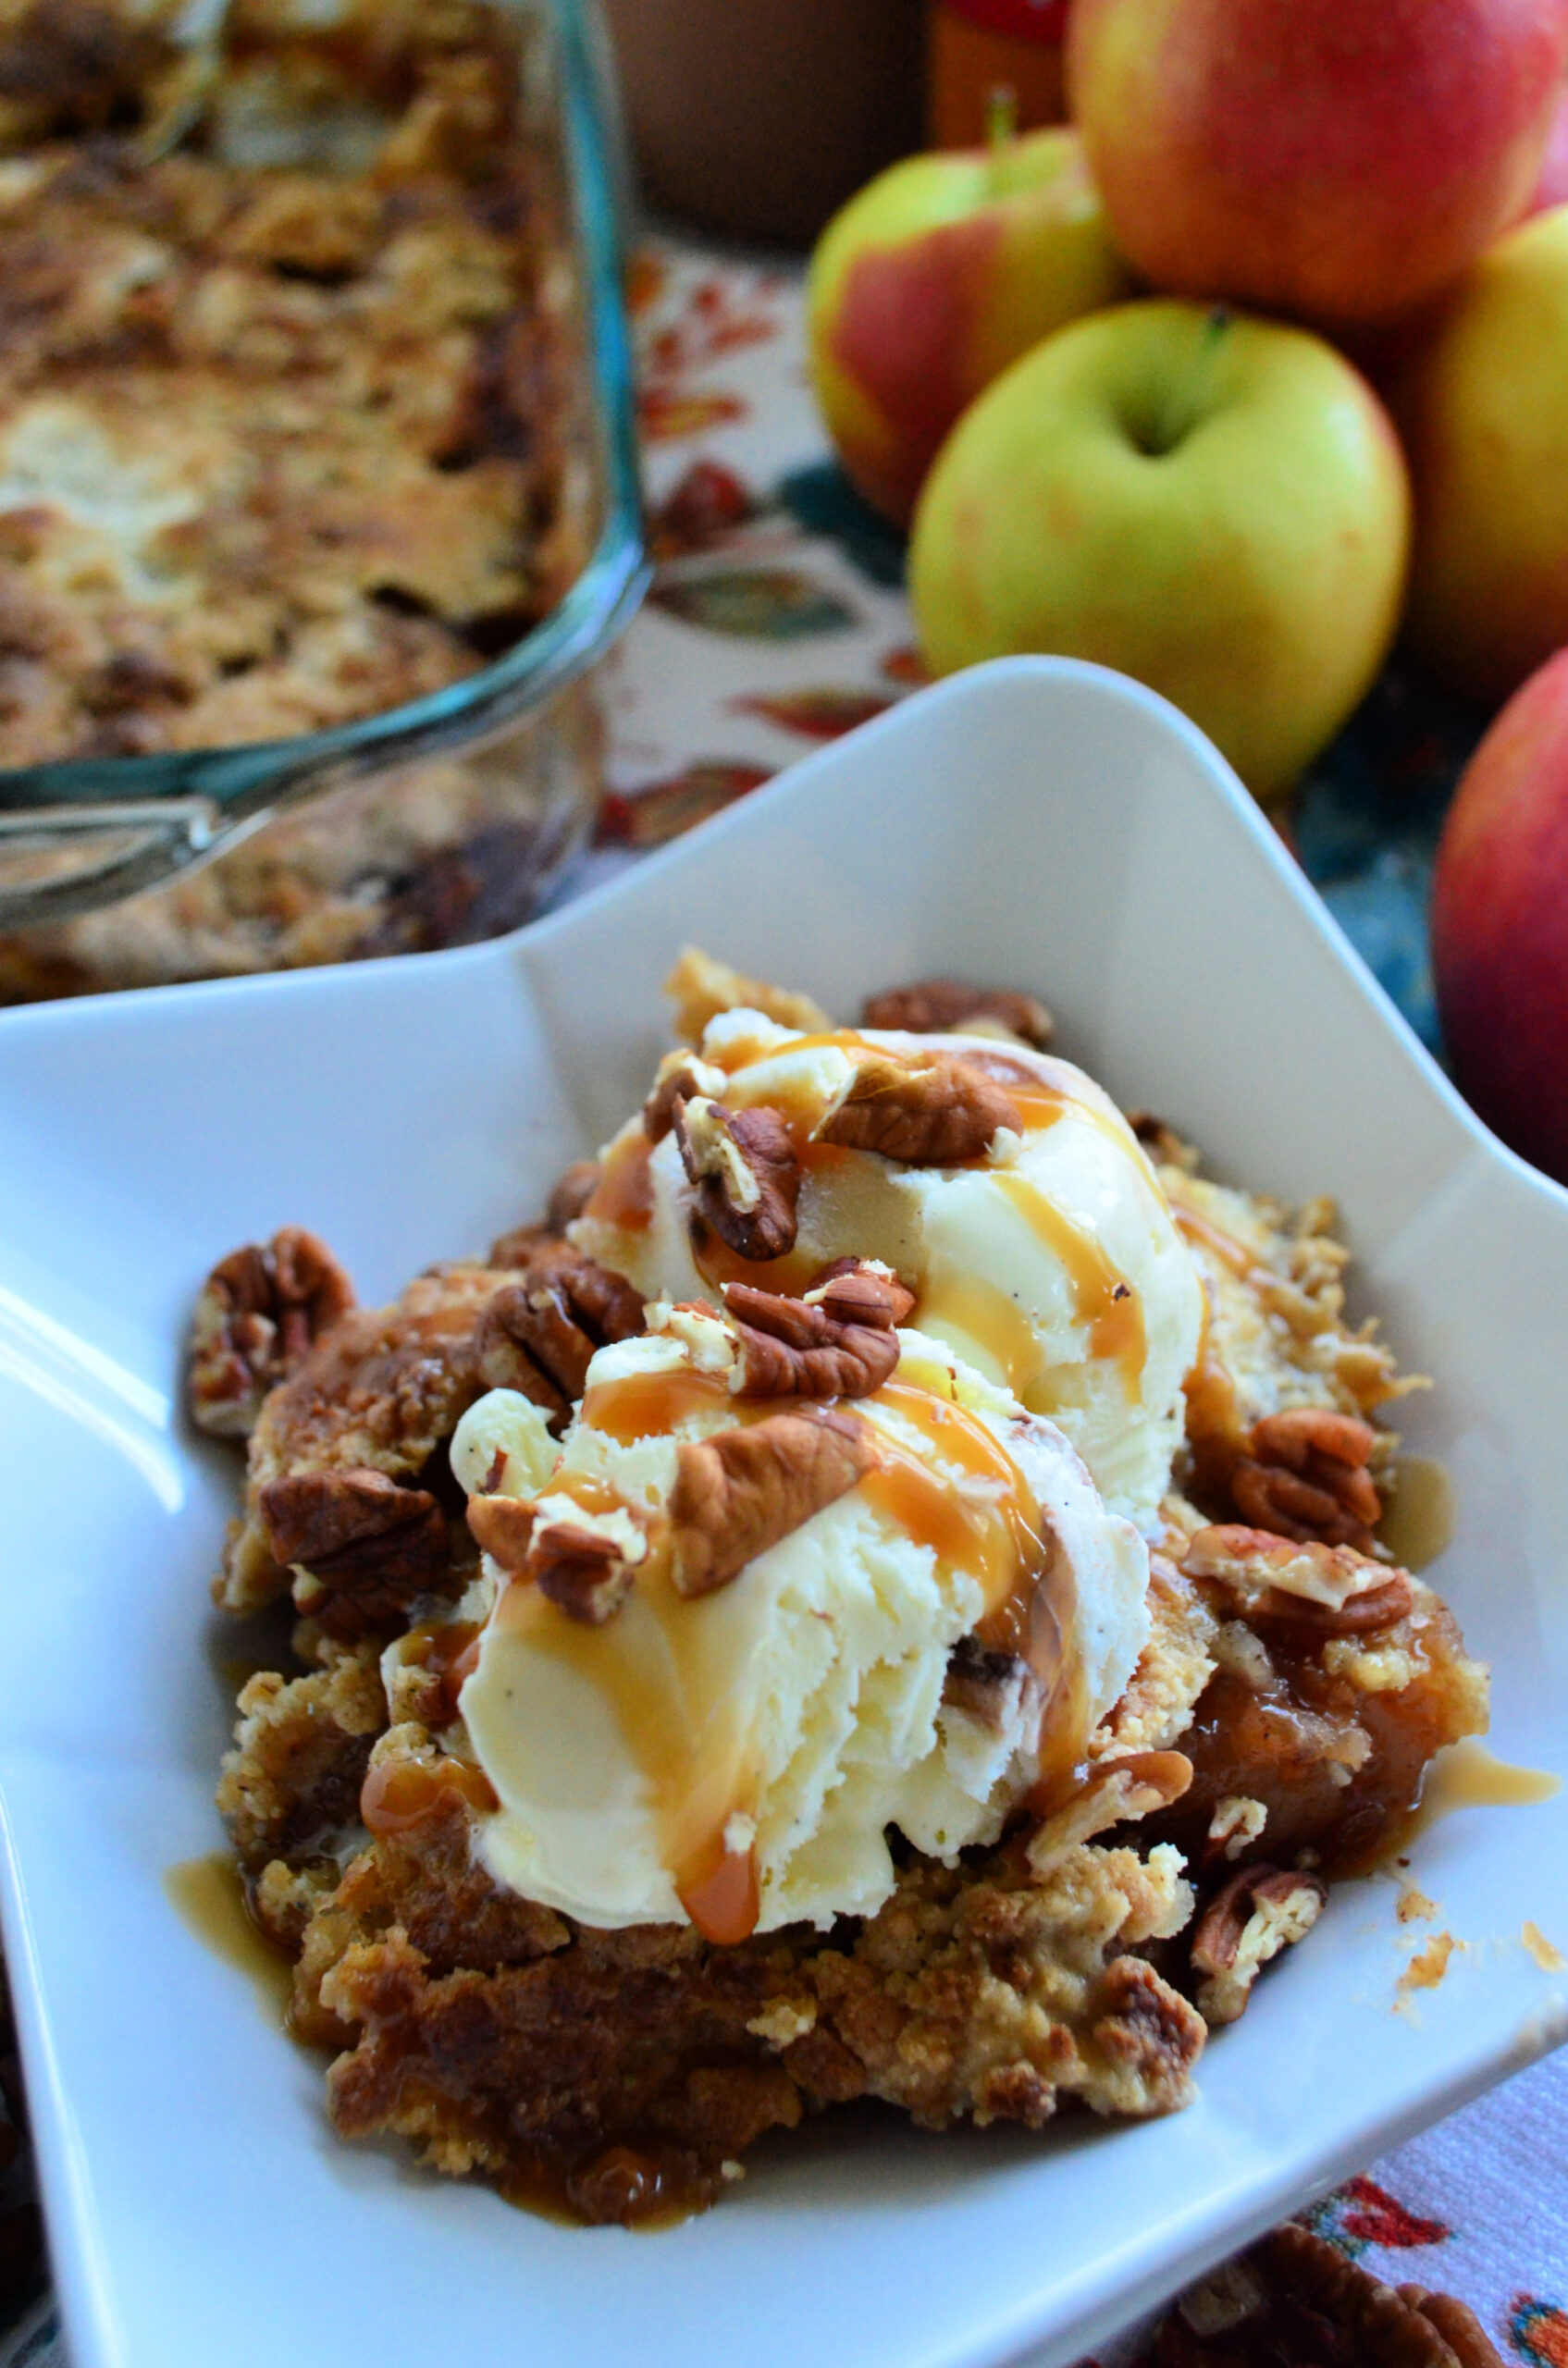 Close up Apple Dump Cake topped with vanilla ice cream, pecans, and caramel drizzle.